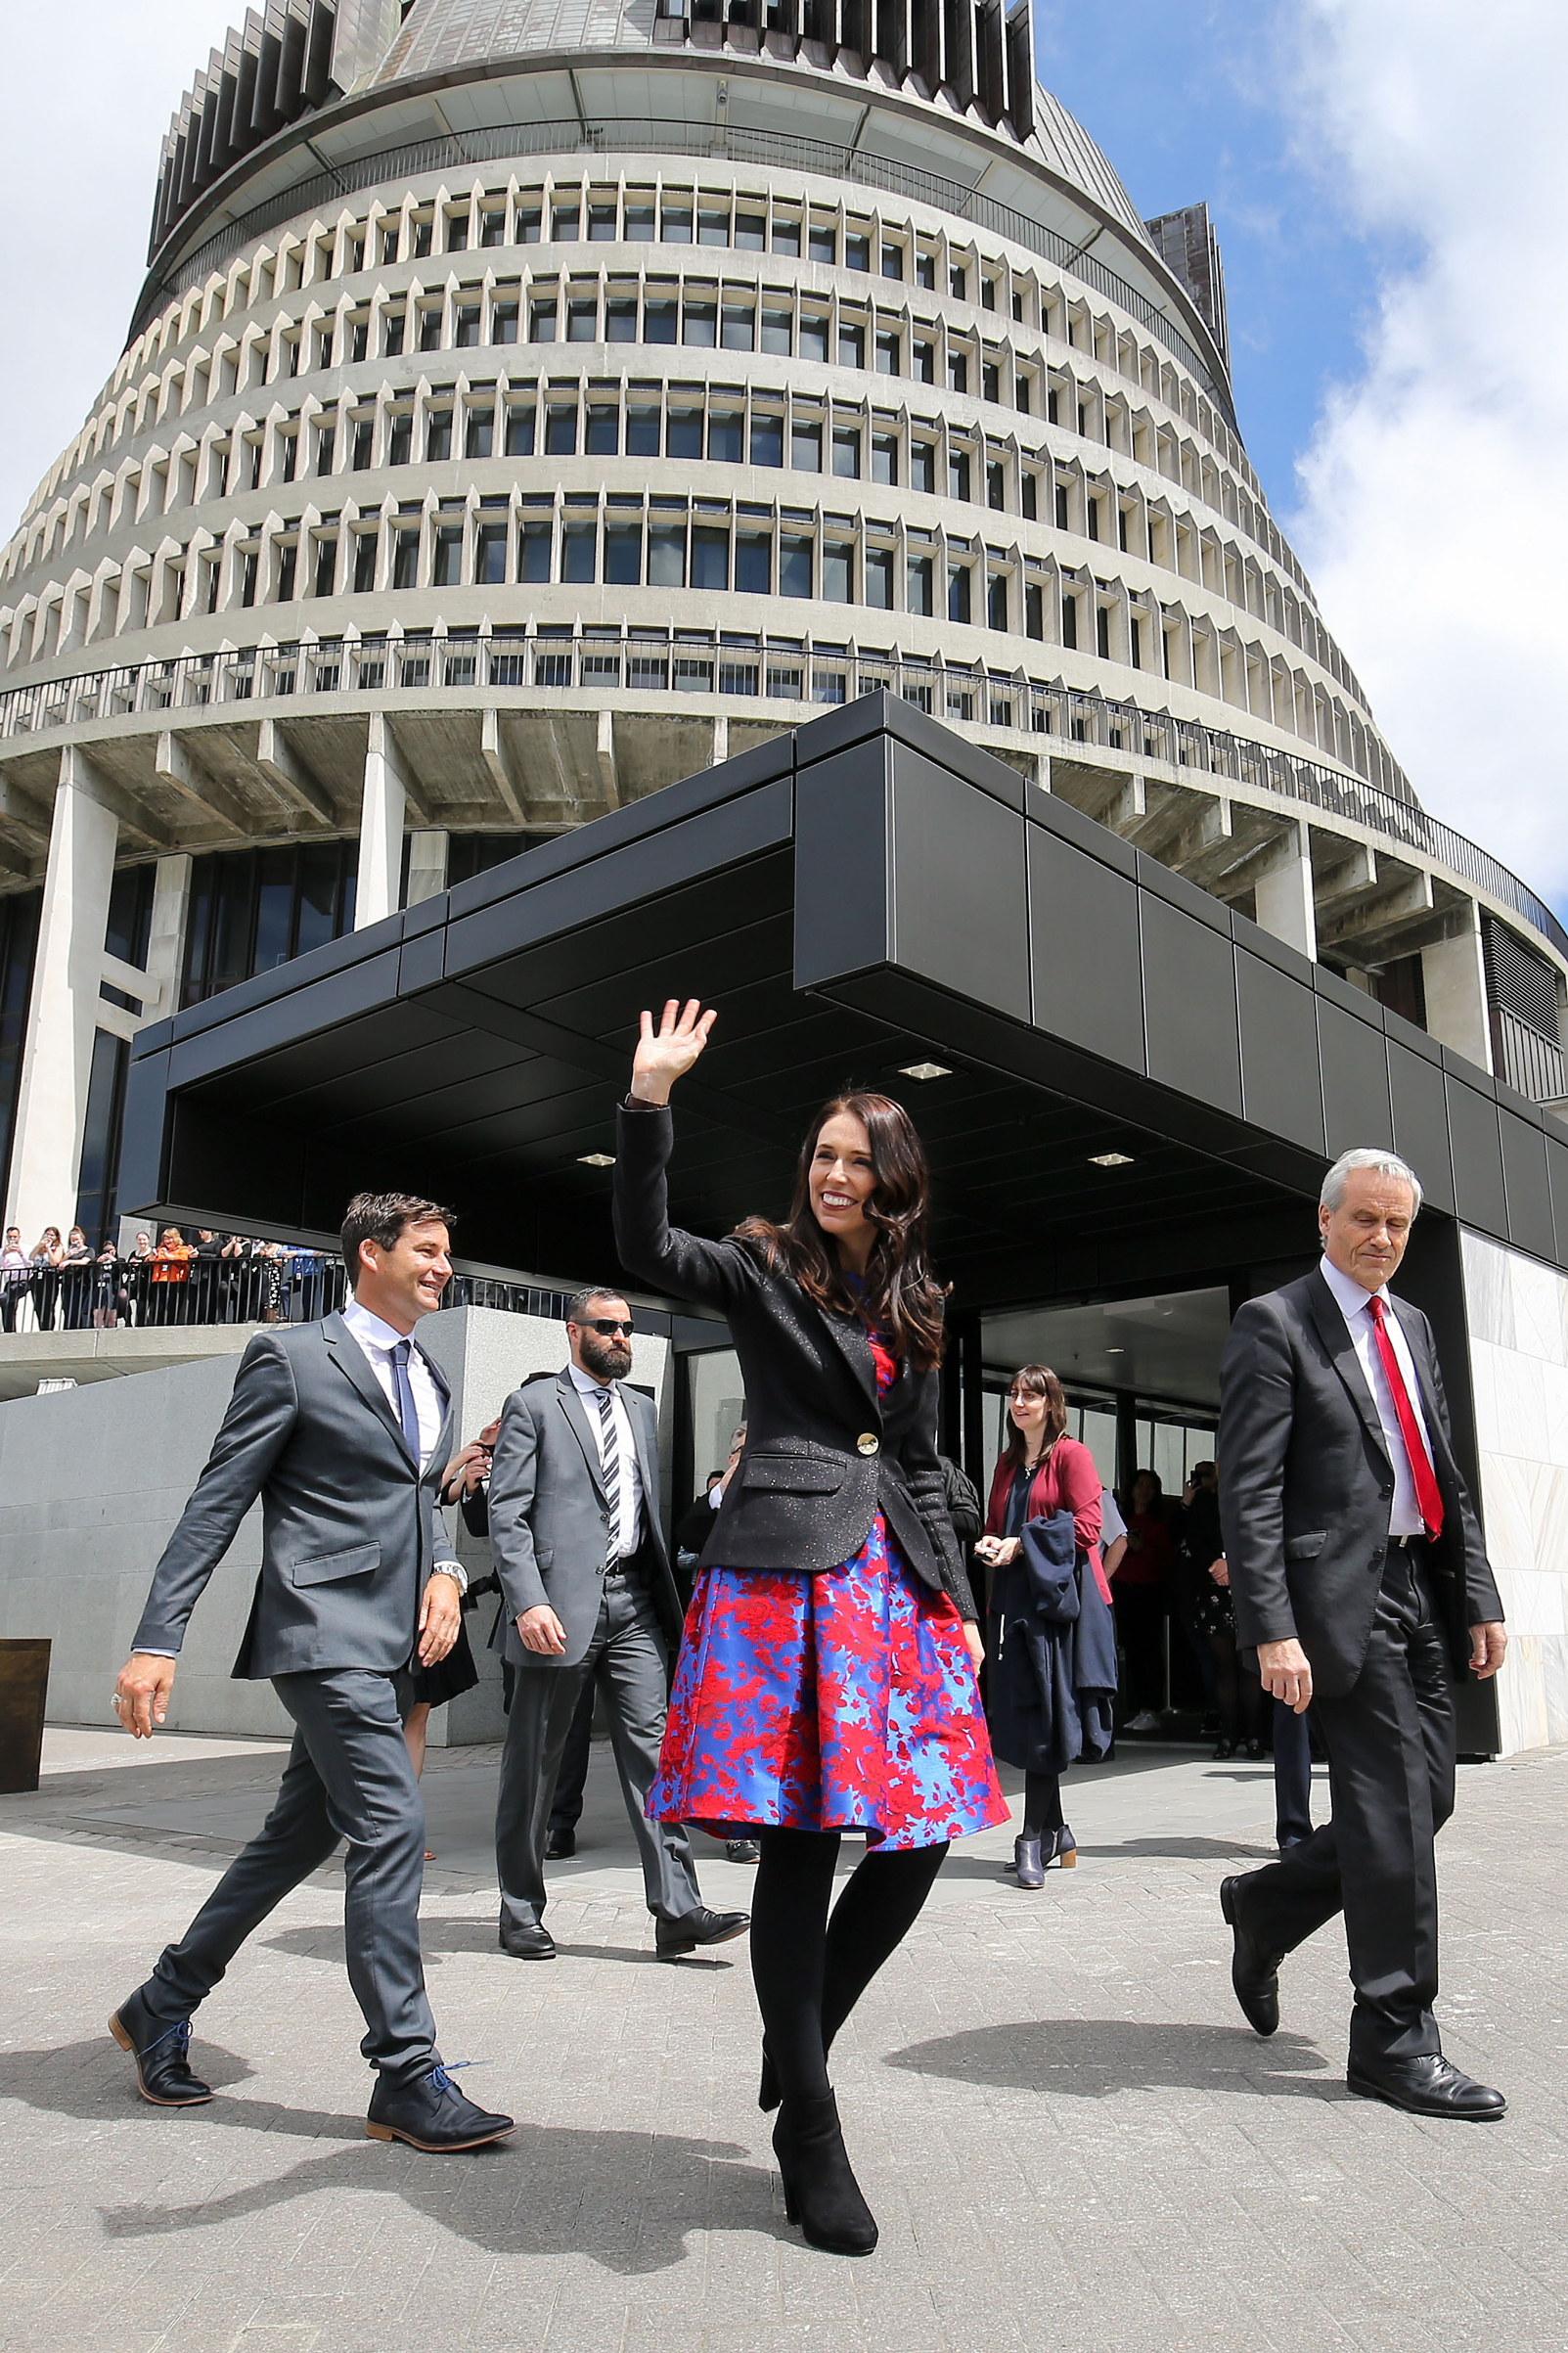 Prime Minister Jacinda Ardern and partner Clarke Gayford arrive at Parliament after a swearing-in ceremony at Government House in Wellington on Oct. 26, 2017.